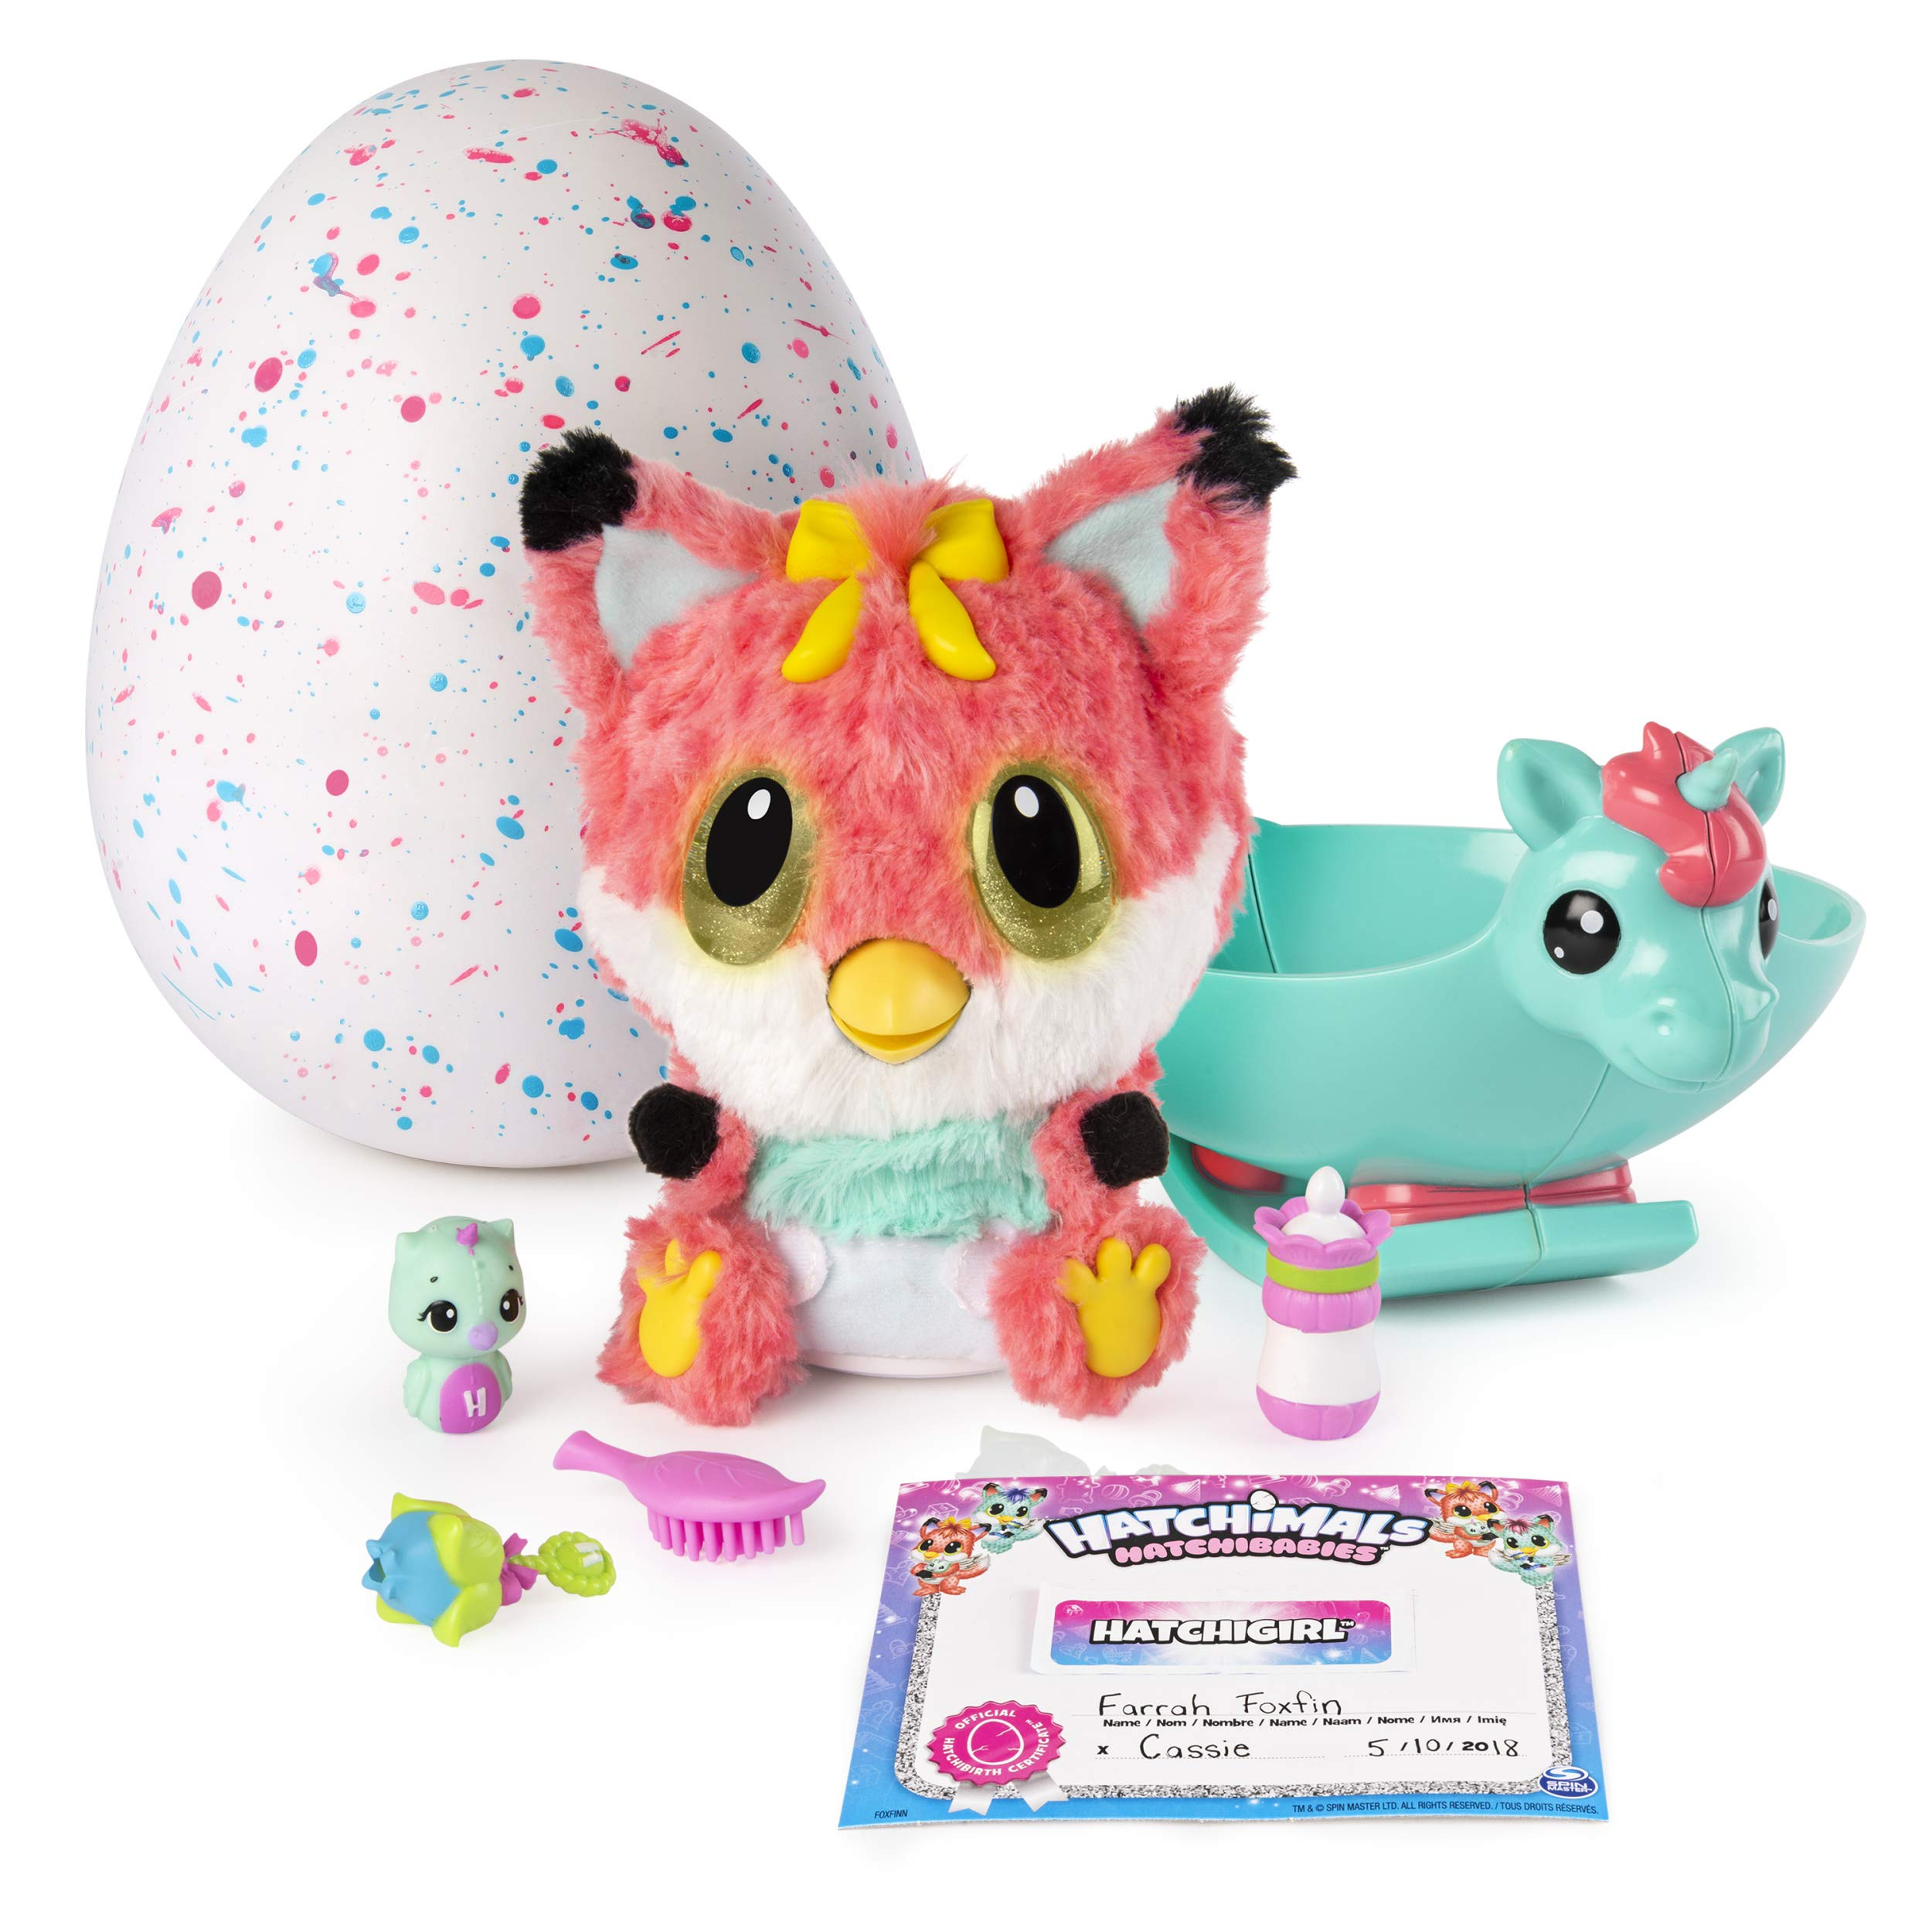 Hatchibabies FoxFin - Hatching Egg with Interactive Pet Baby (Styles May Vary) Ages 5 and Up - HOT Toy 2018 by Hatchimals (Image #2)